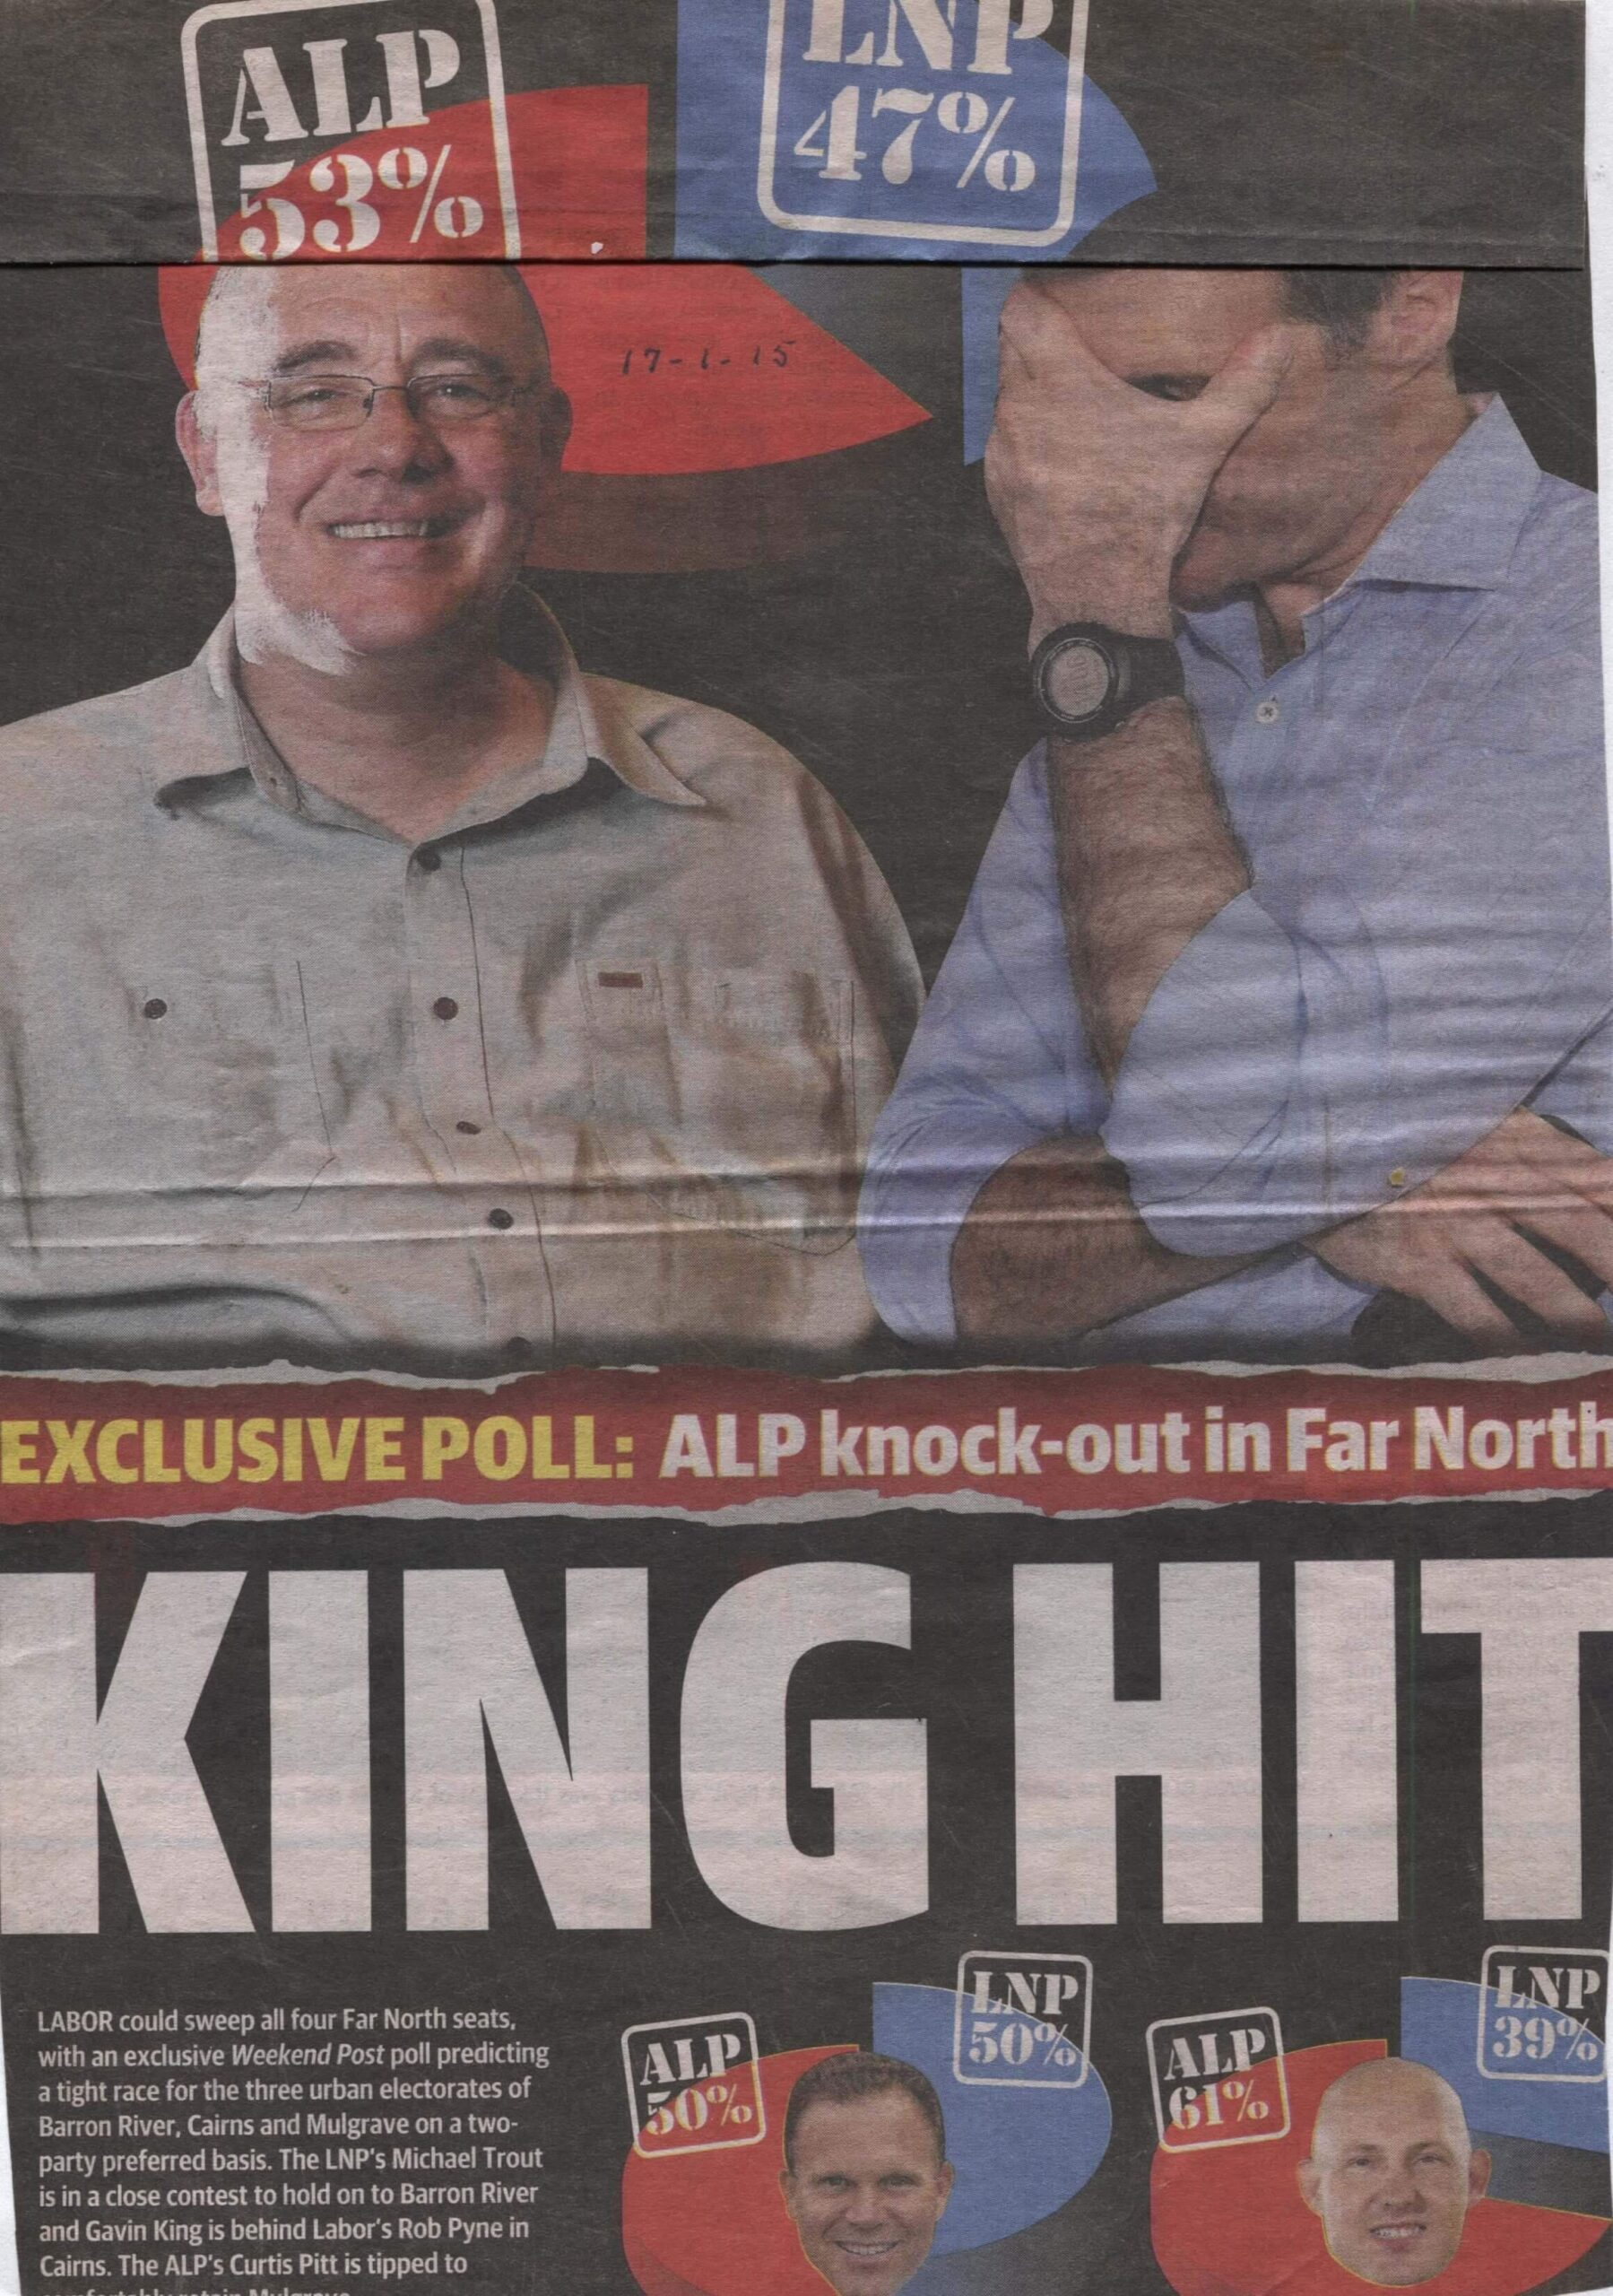 King Hit - Newspaper article showing ALP win